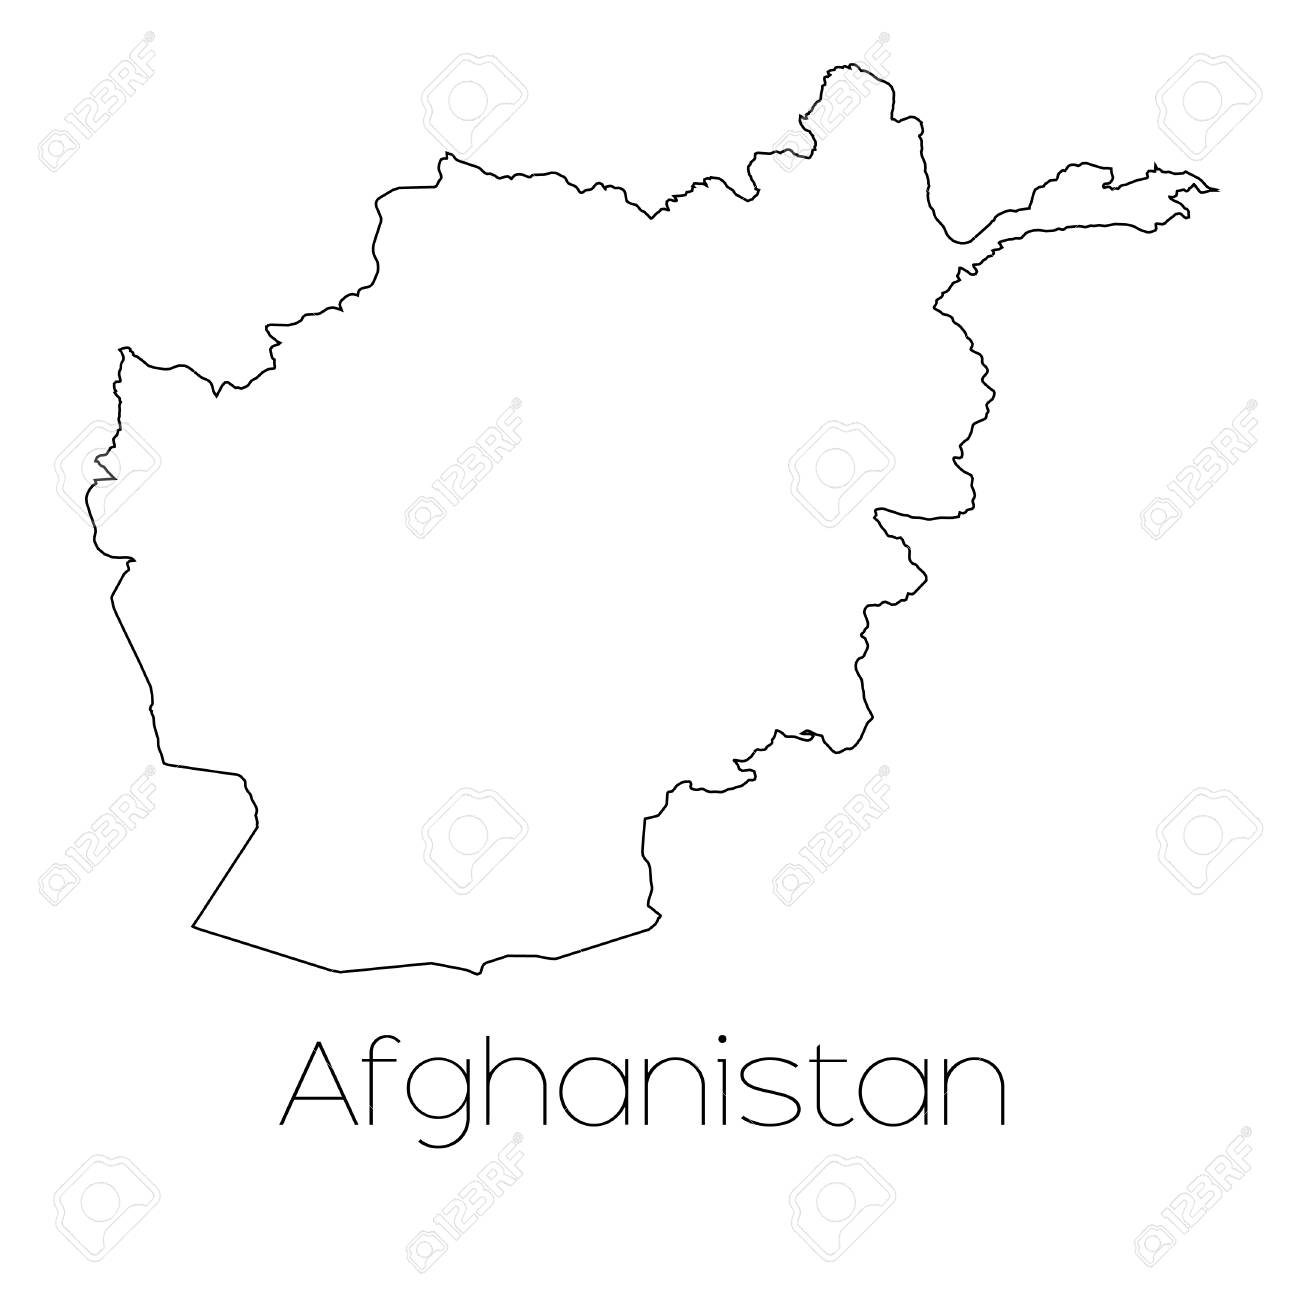 A Country Shape Isolated On Background Of The Country Of Afghanistan on drawing of nicaragua, drawing of guatemala, drawing of colombia, drawing of tradition, drawing of arms race, drawing of indonesia, drawing of liberia, drawing of somalia, drawing of grenada, drawing of western hemisphere, drawing of senegal, drawing of ecuador, drawing of bahamas, drawing of honduras, drawing of greenland, drawing of deccan plateau, drawing of bulgaria, drawing of marshall islands, drawing of martinique, drawing of belgium,